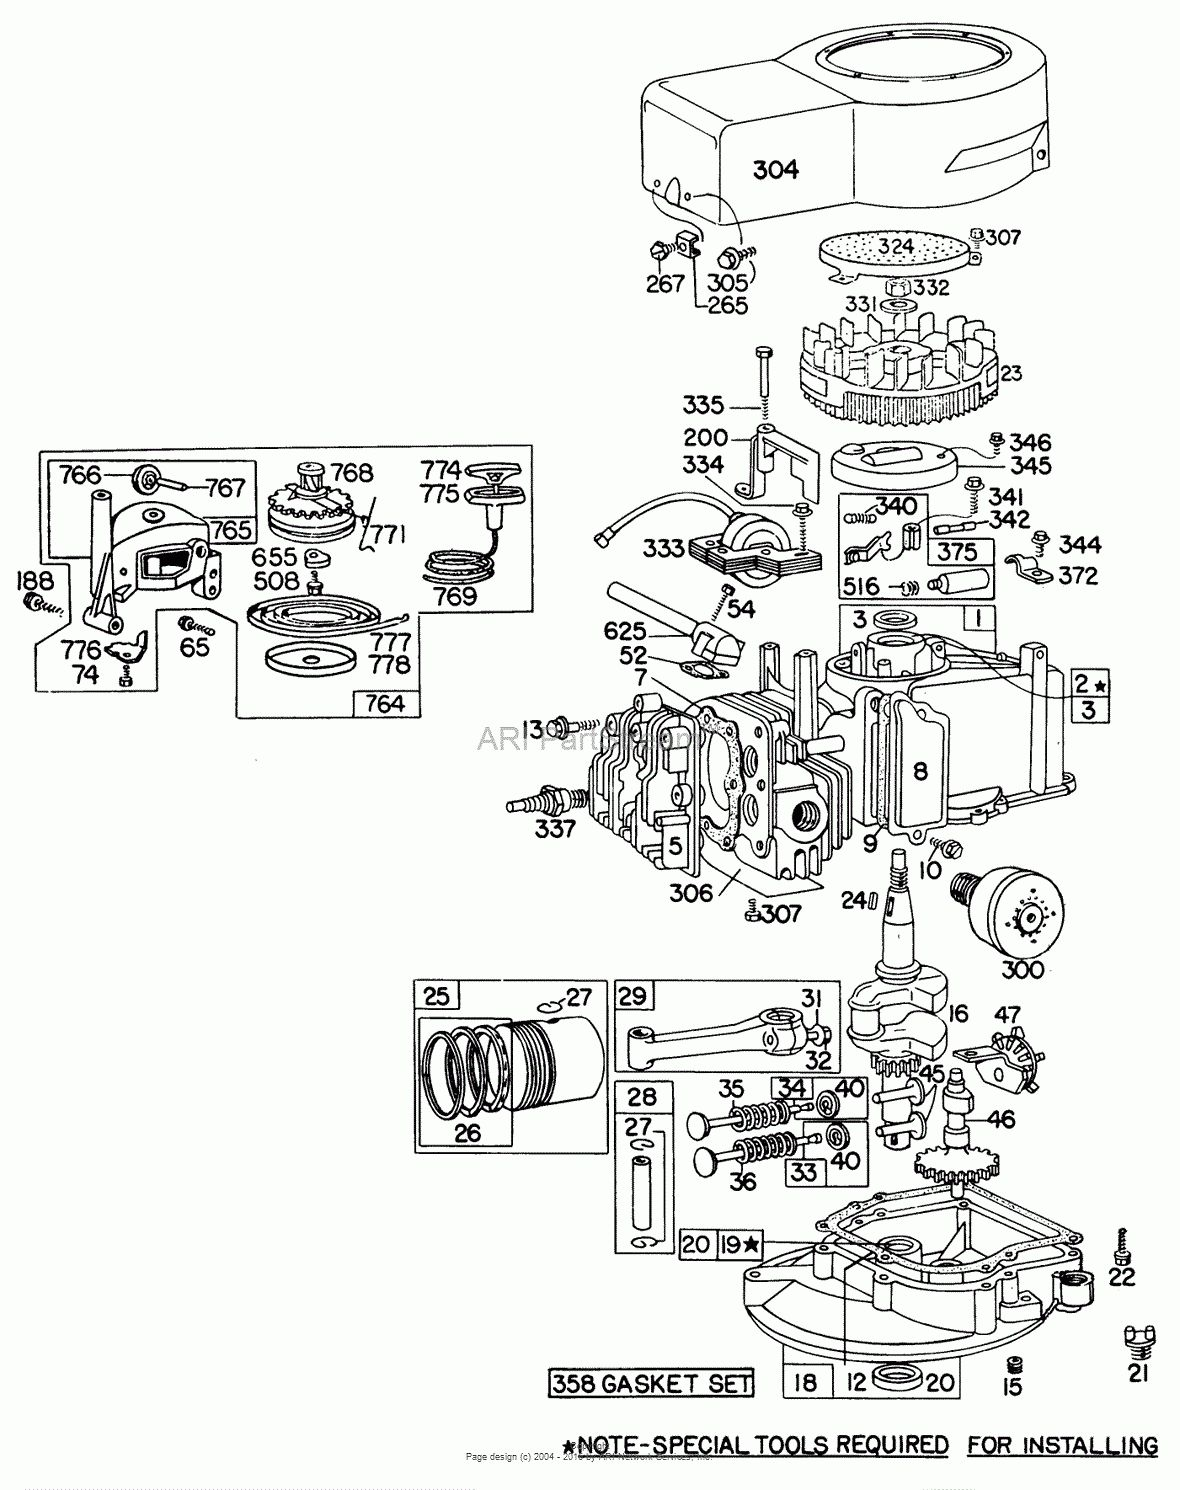 briggs stratton small engine diagram wire management \u0026 wiring diagram Small Gas Engine Diagram